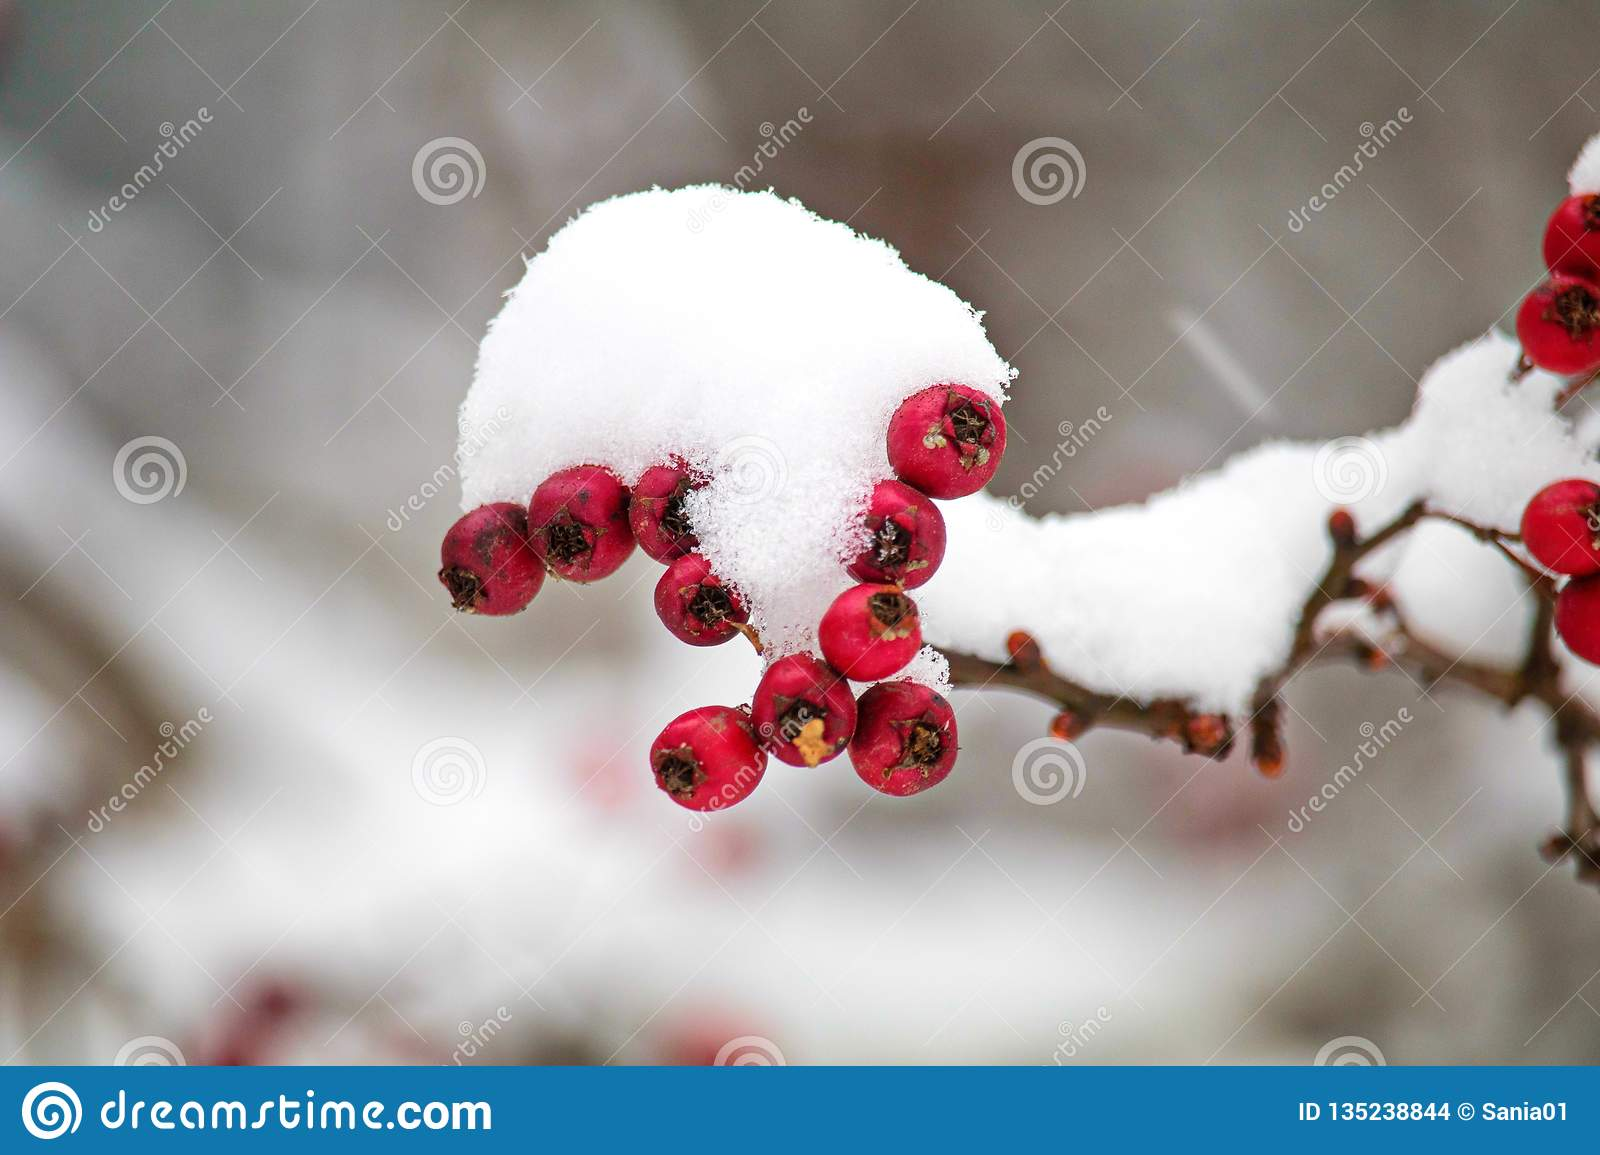 Red mountain ash on a branch under a snow cap. feed for birds in winter. frozen berries in frost